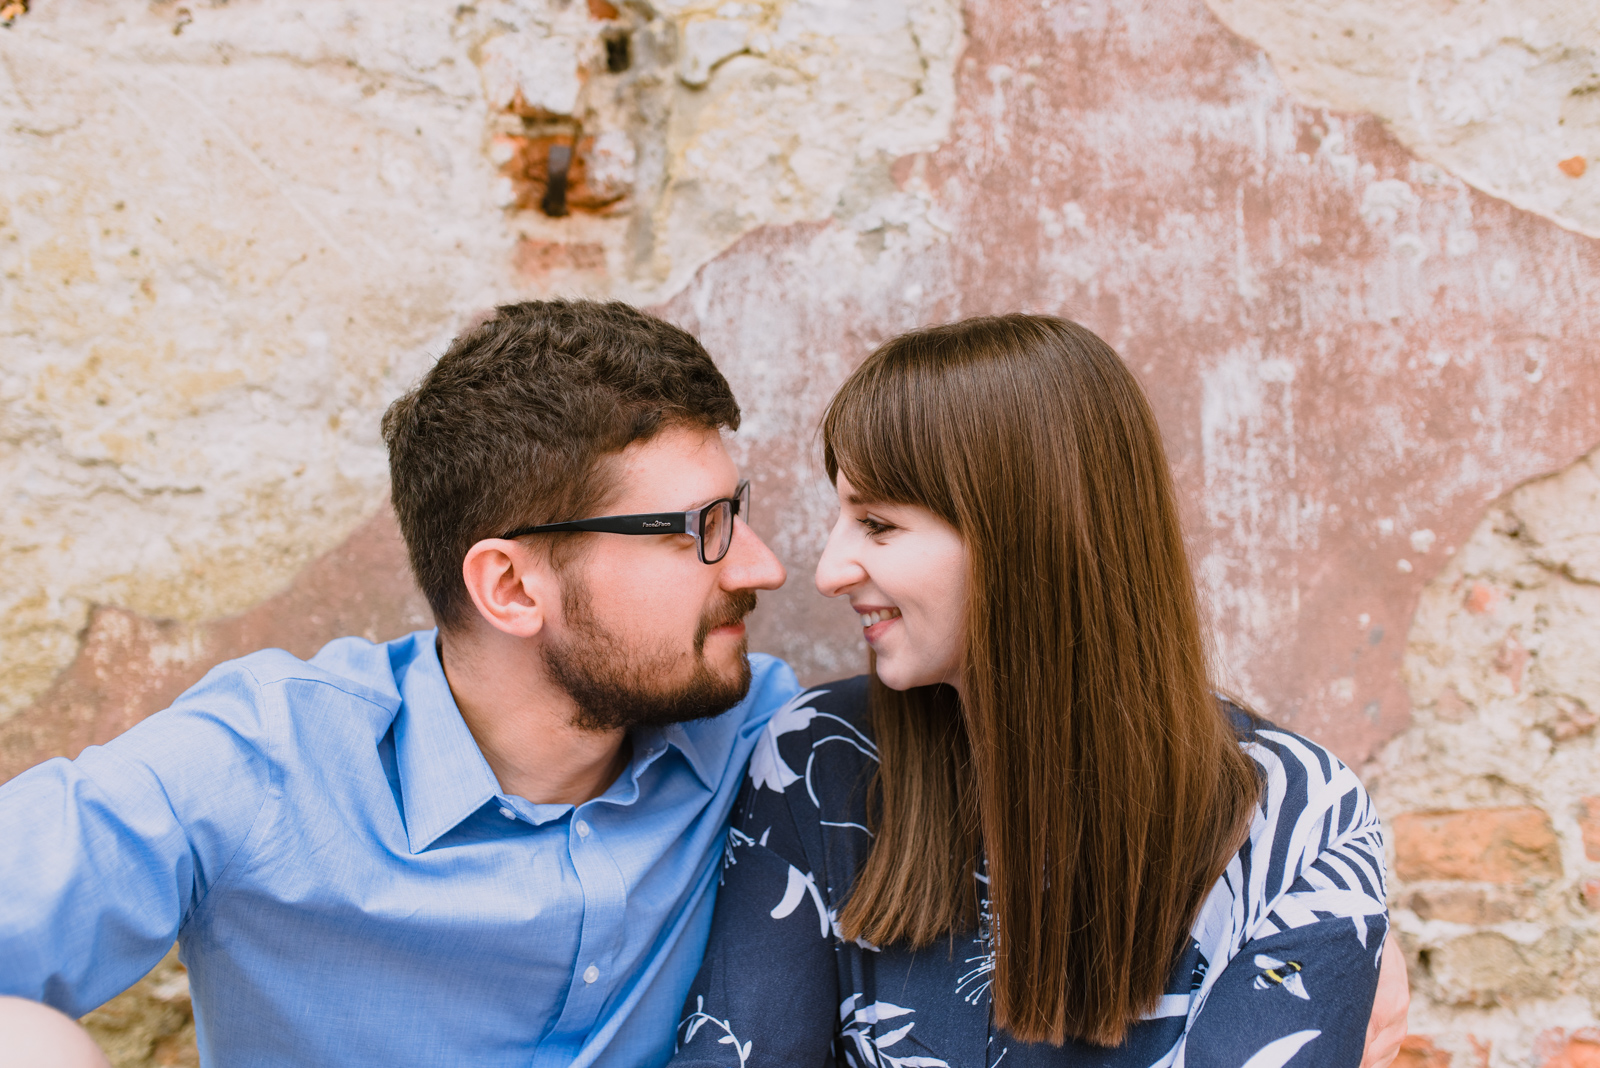 engagement shoot in Lublin Poland, summer engagement shoot in the city, old town engagement photos taken by Hello, Sugar Destination Wedding Photography-14.jpg